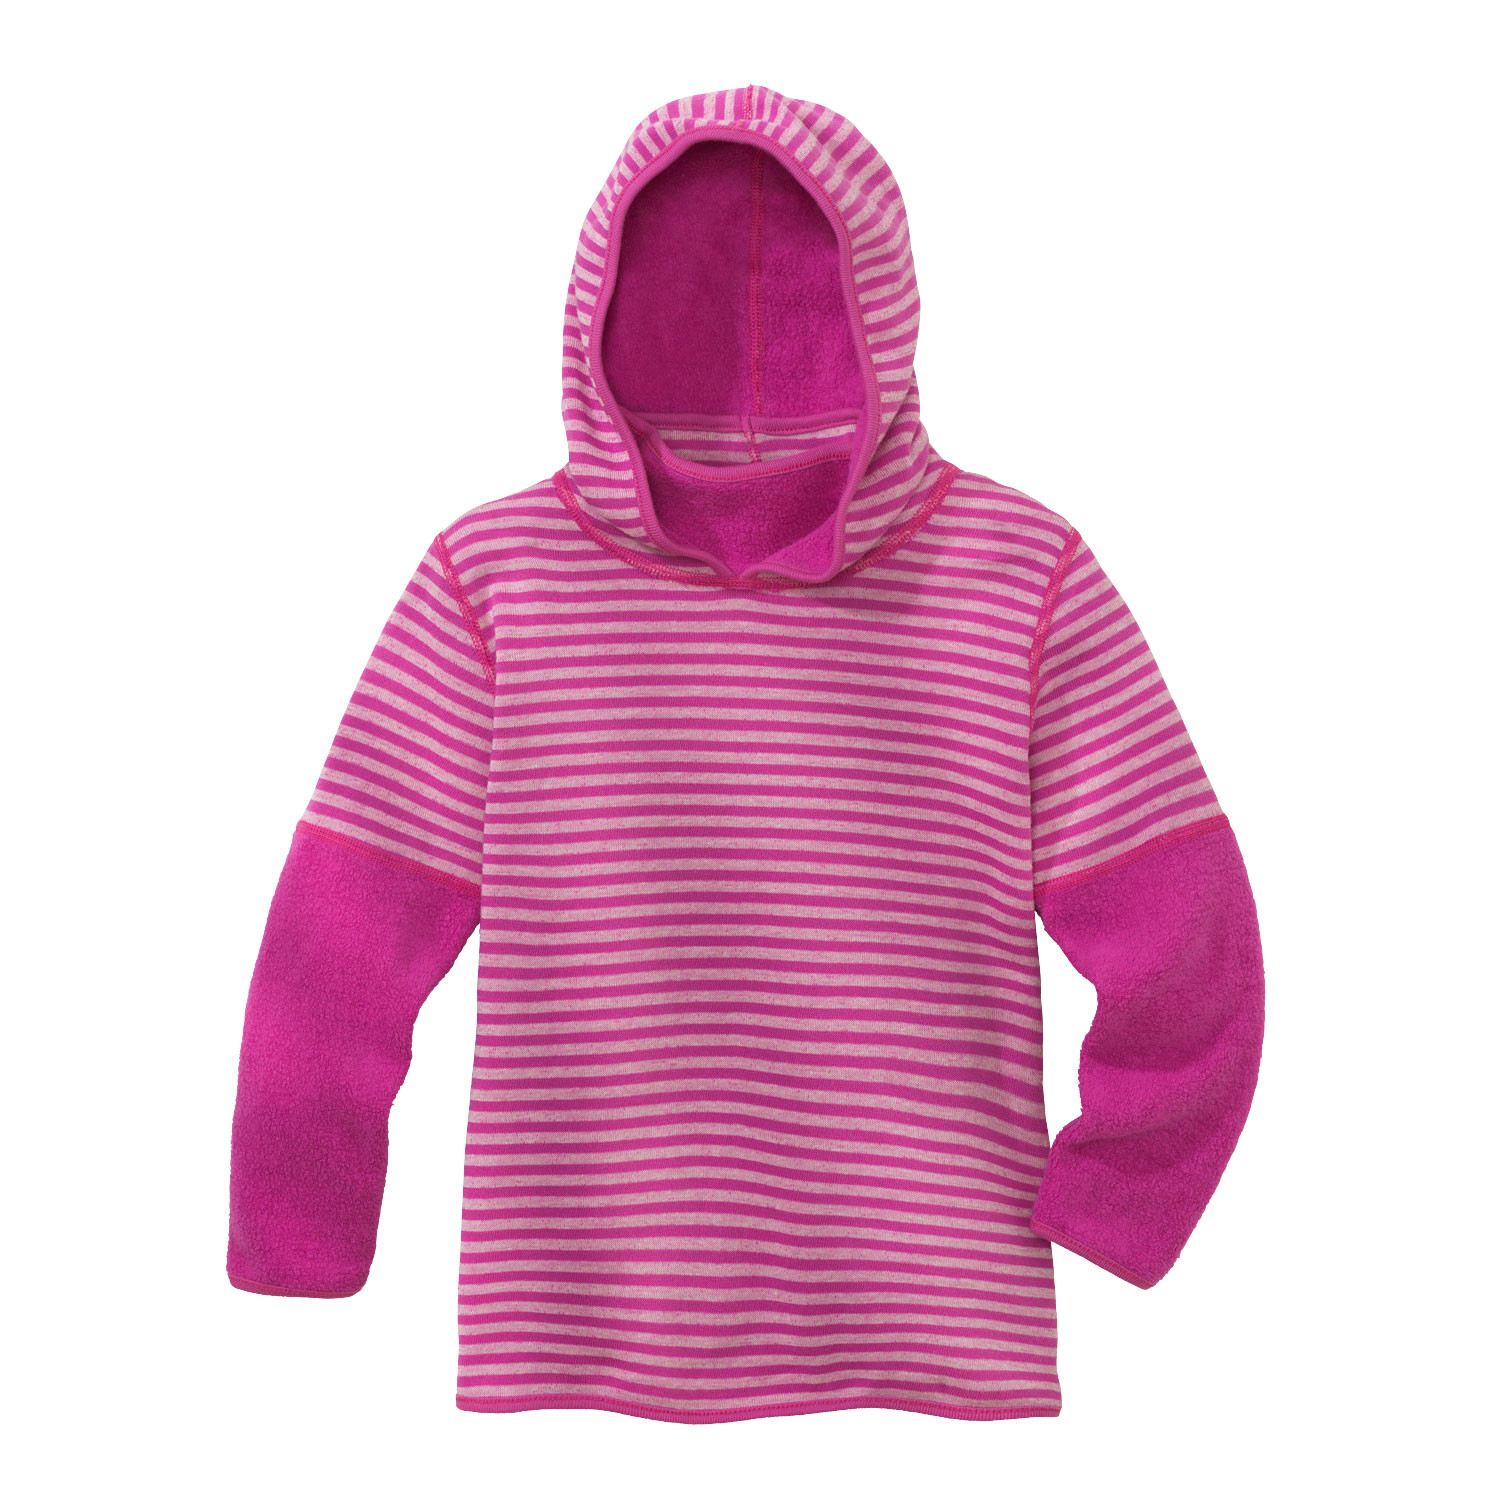 minibär DESIGN Keerbare kinderpullover van bio-fleece, fuchsia/naturel | Waschbär Eco-Shop from Waschbär